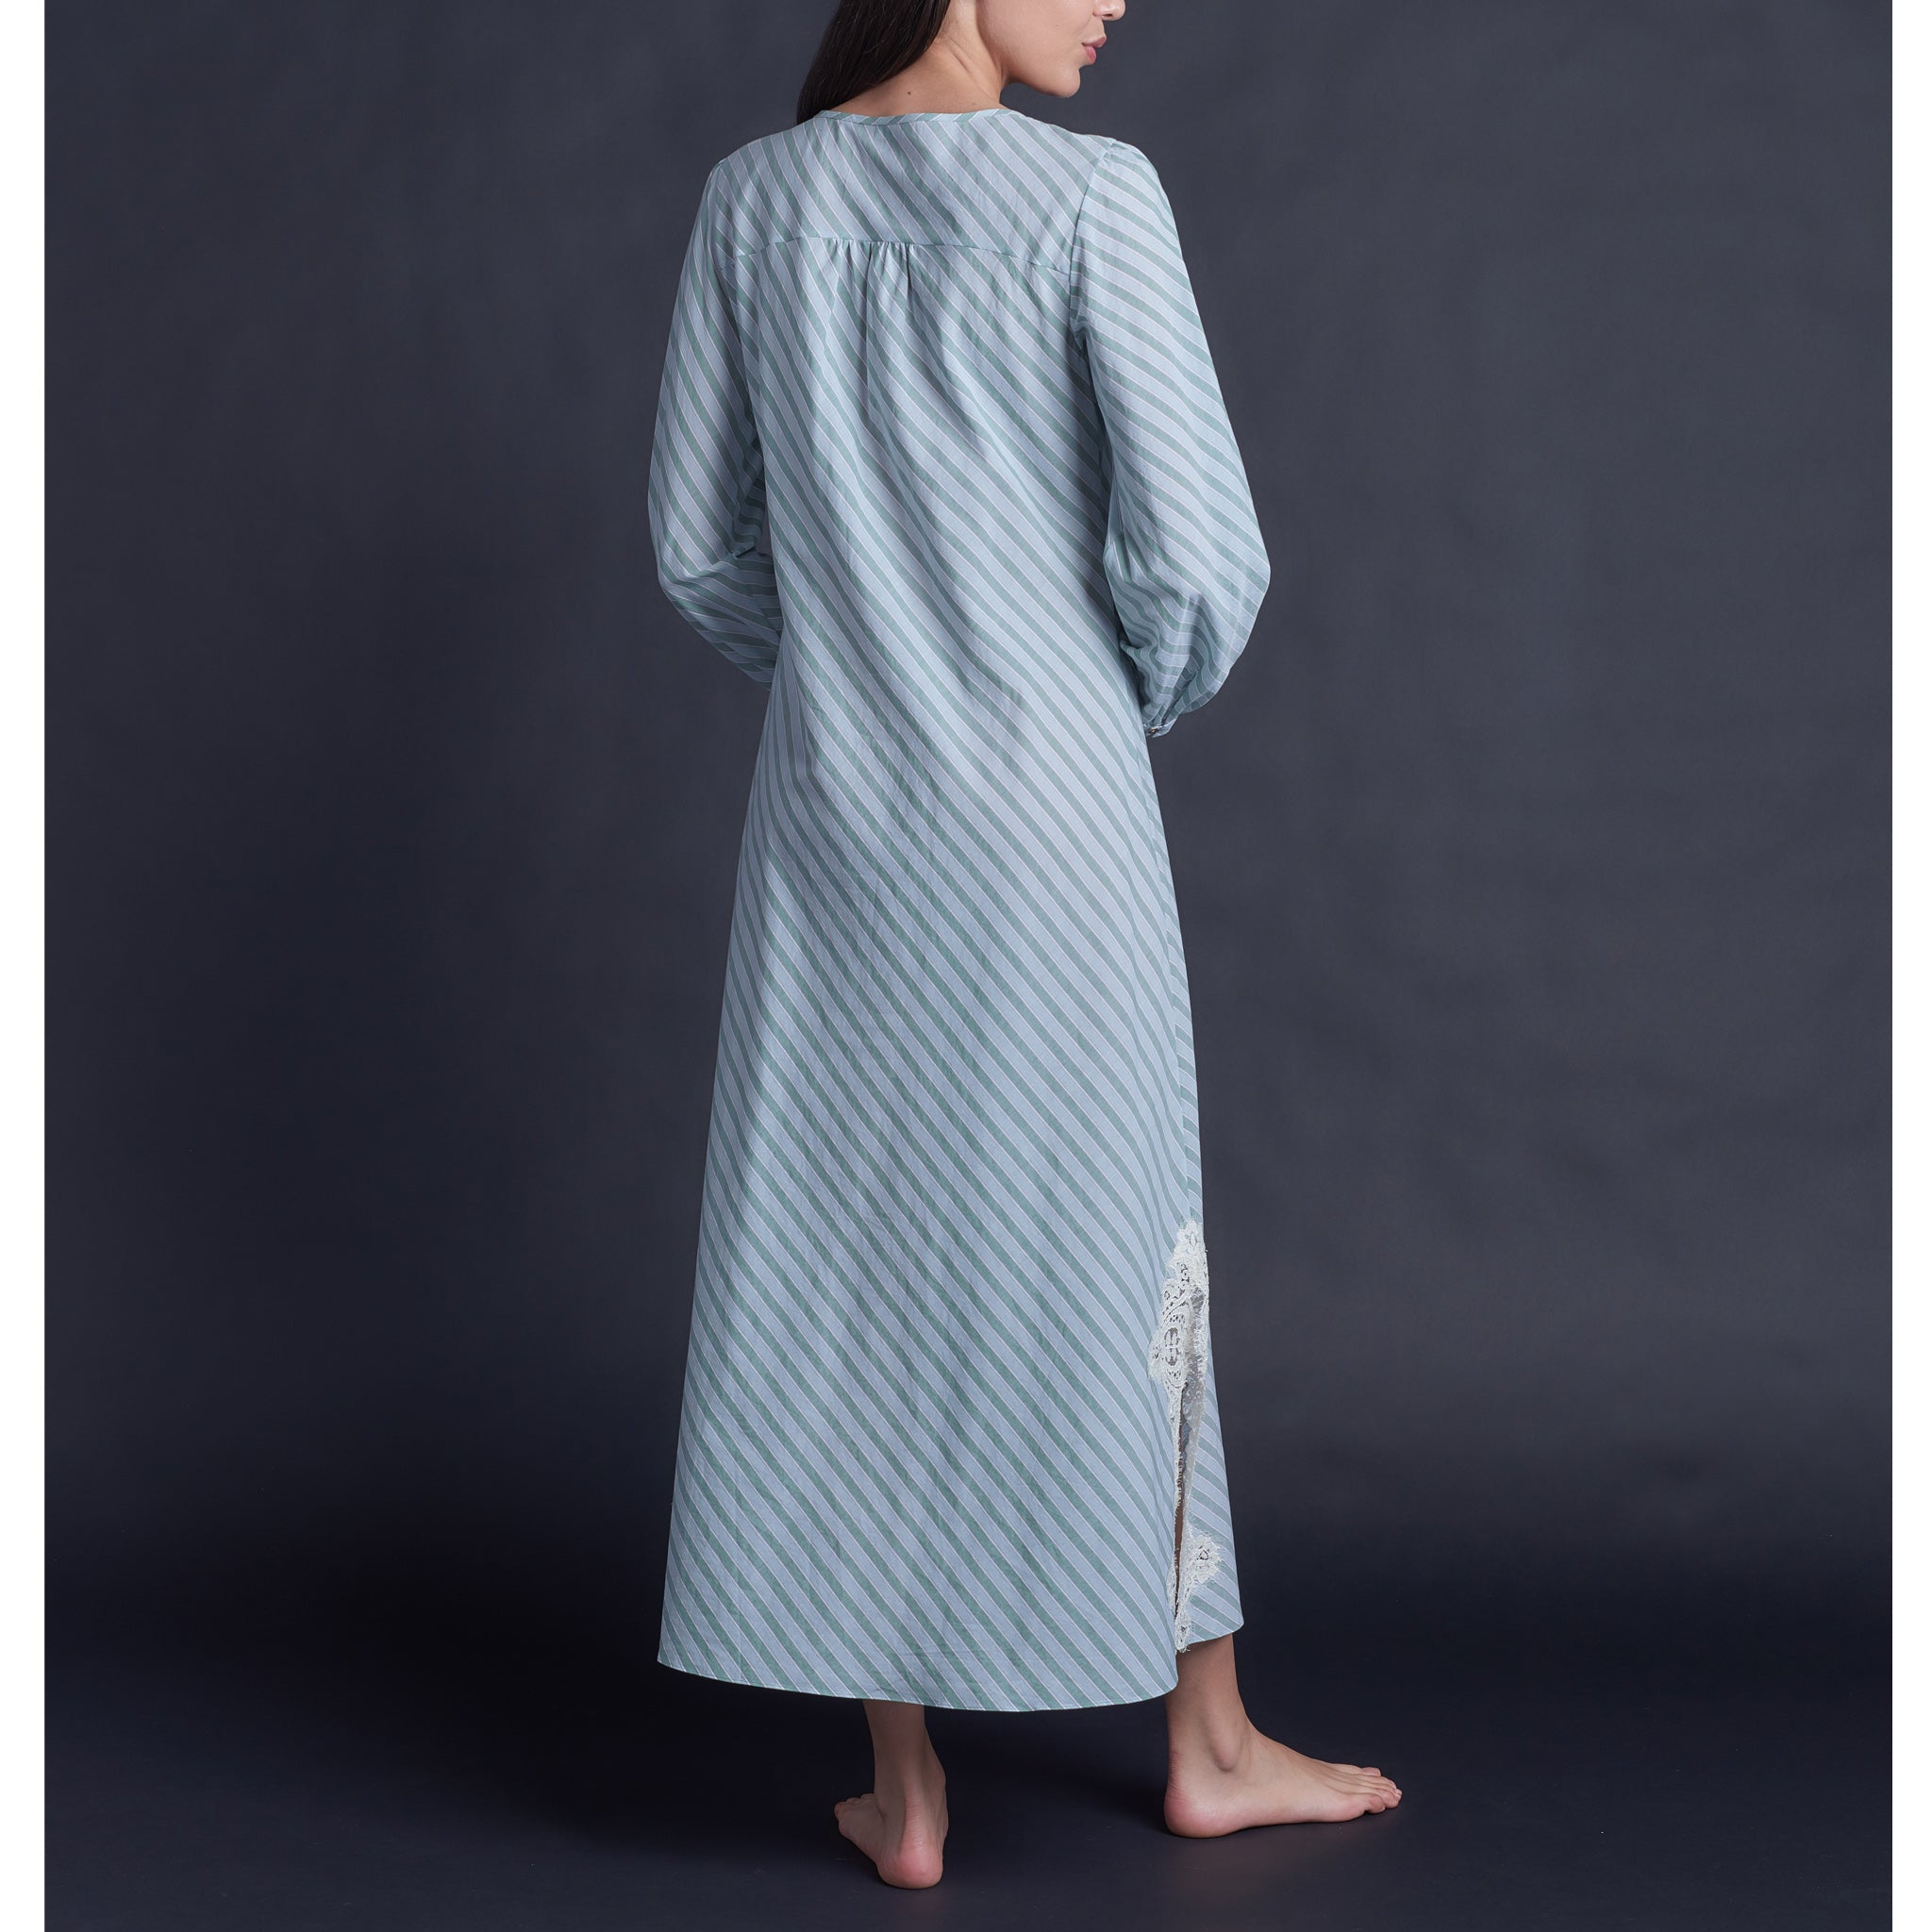 Bast Long Sleep Shirt in Italian Green Striped Cotton